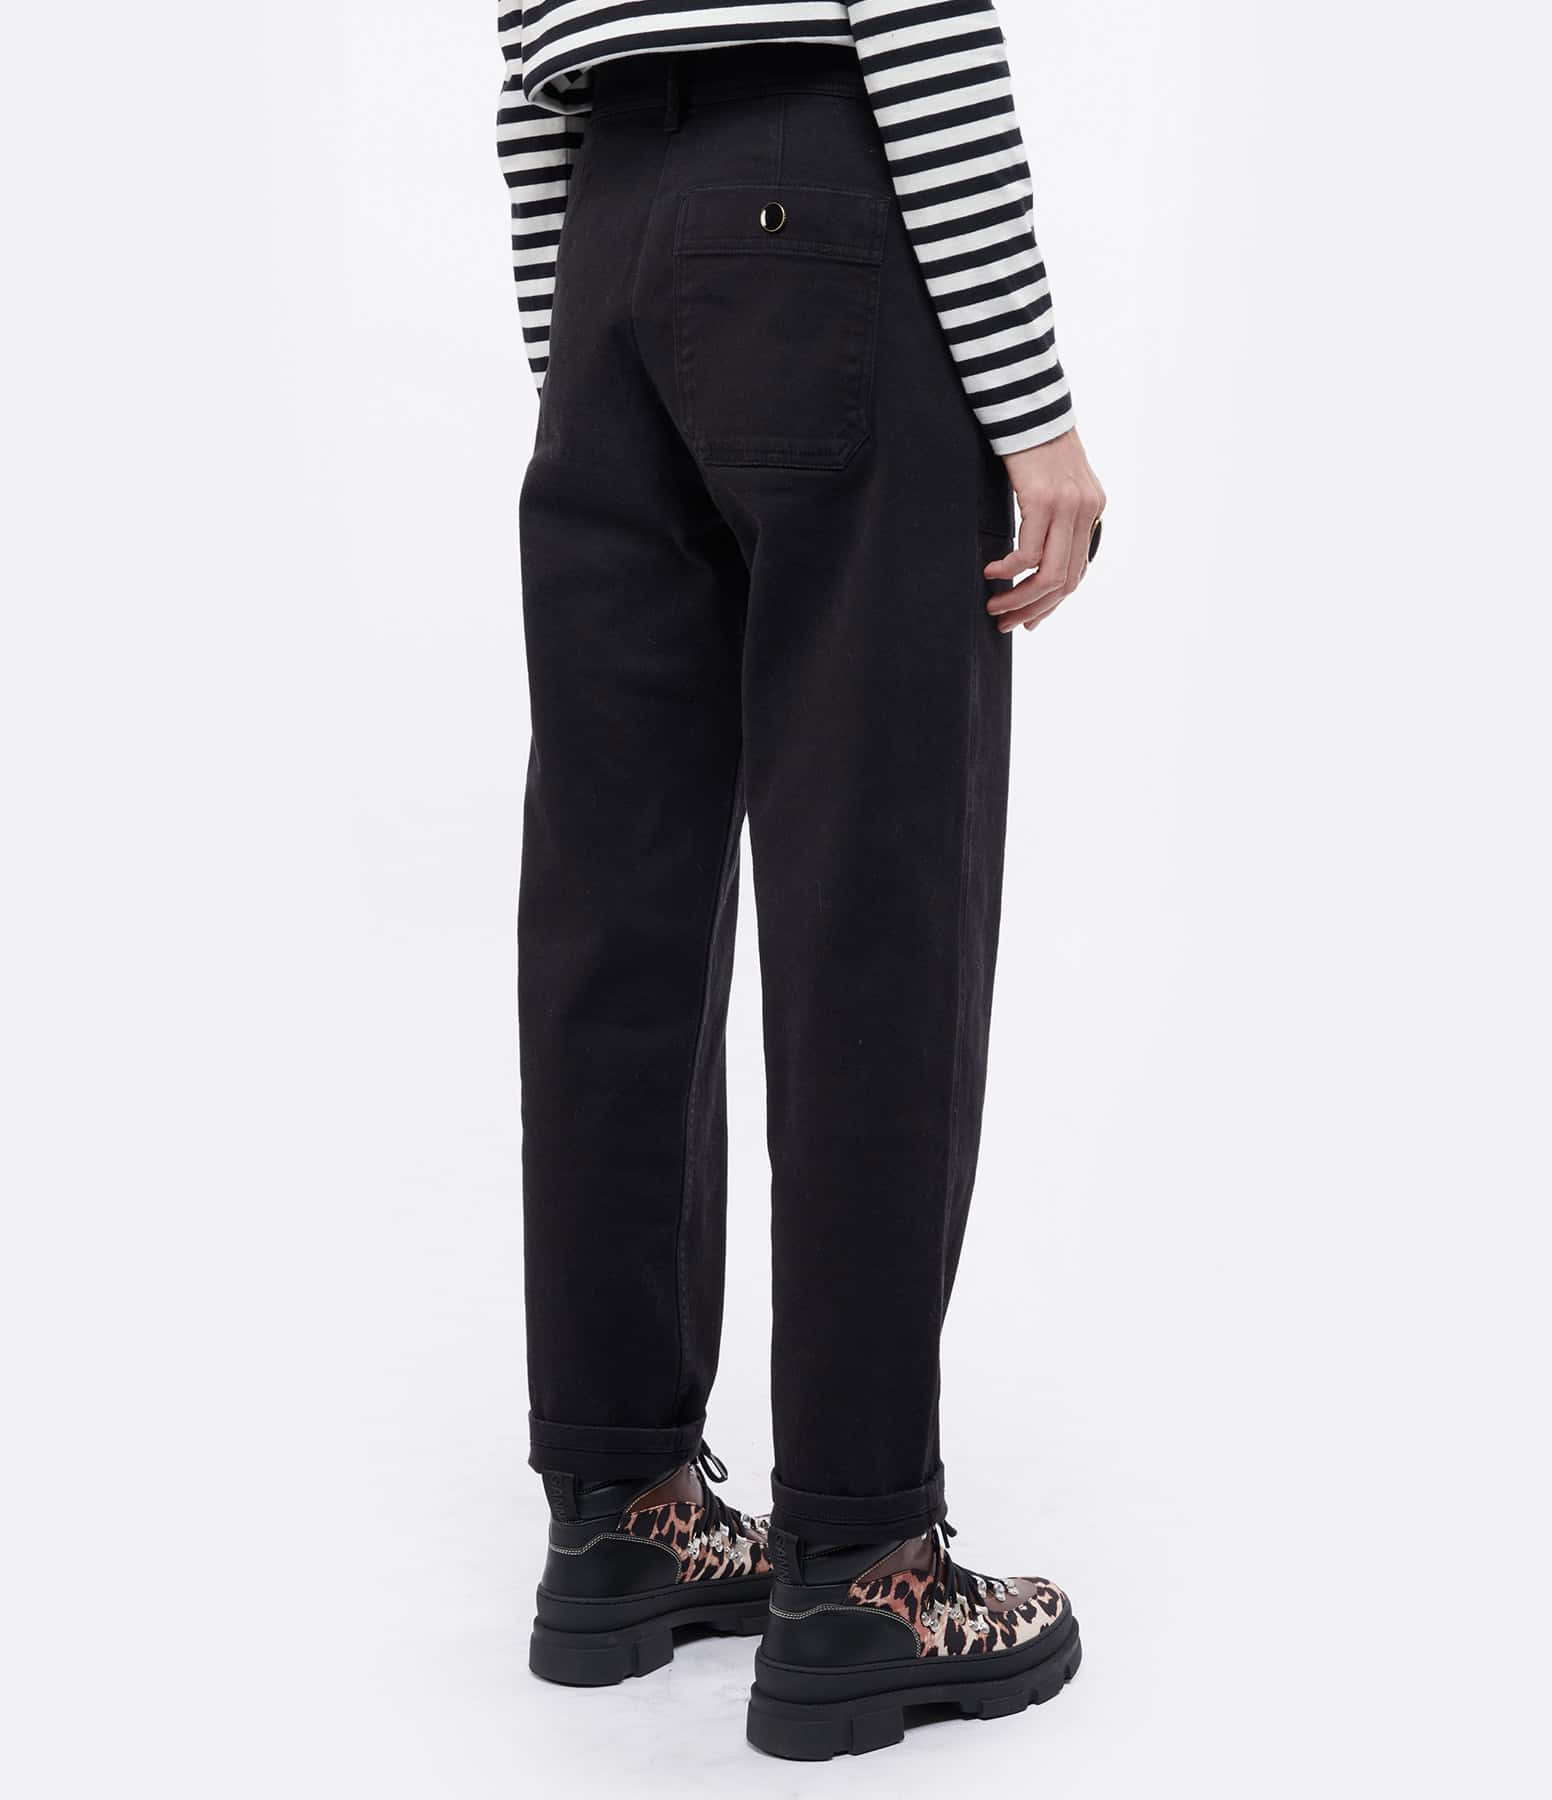 MAISON STANDARDS - Pantalon Worker Noir